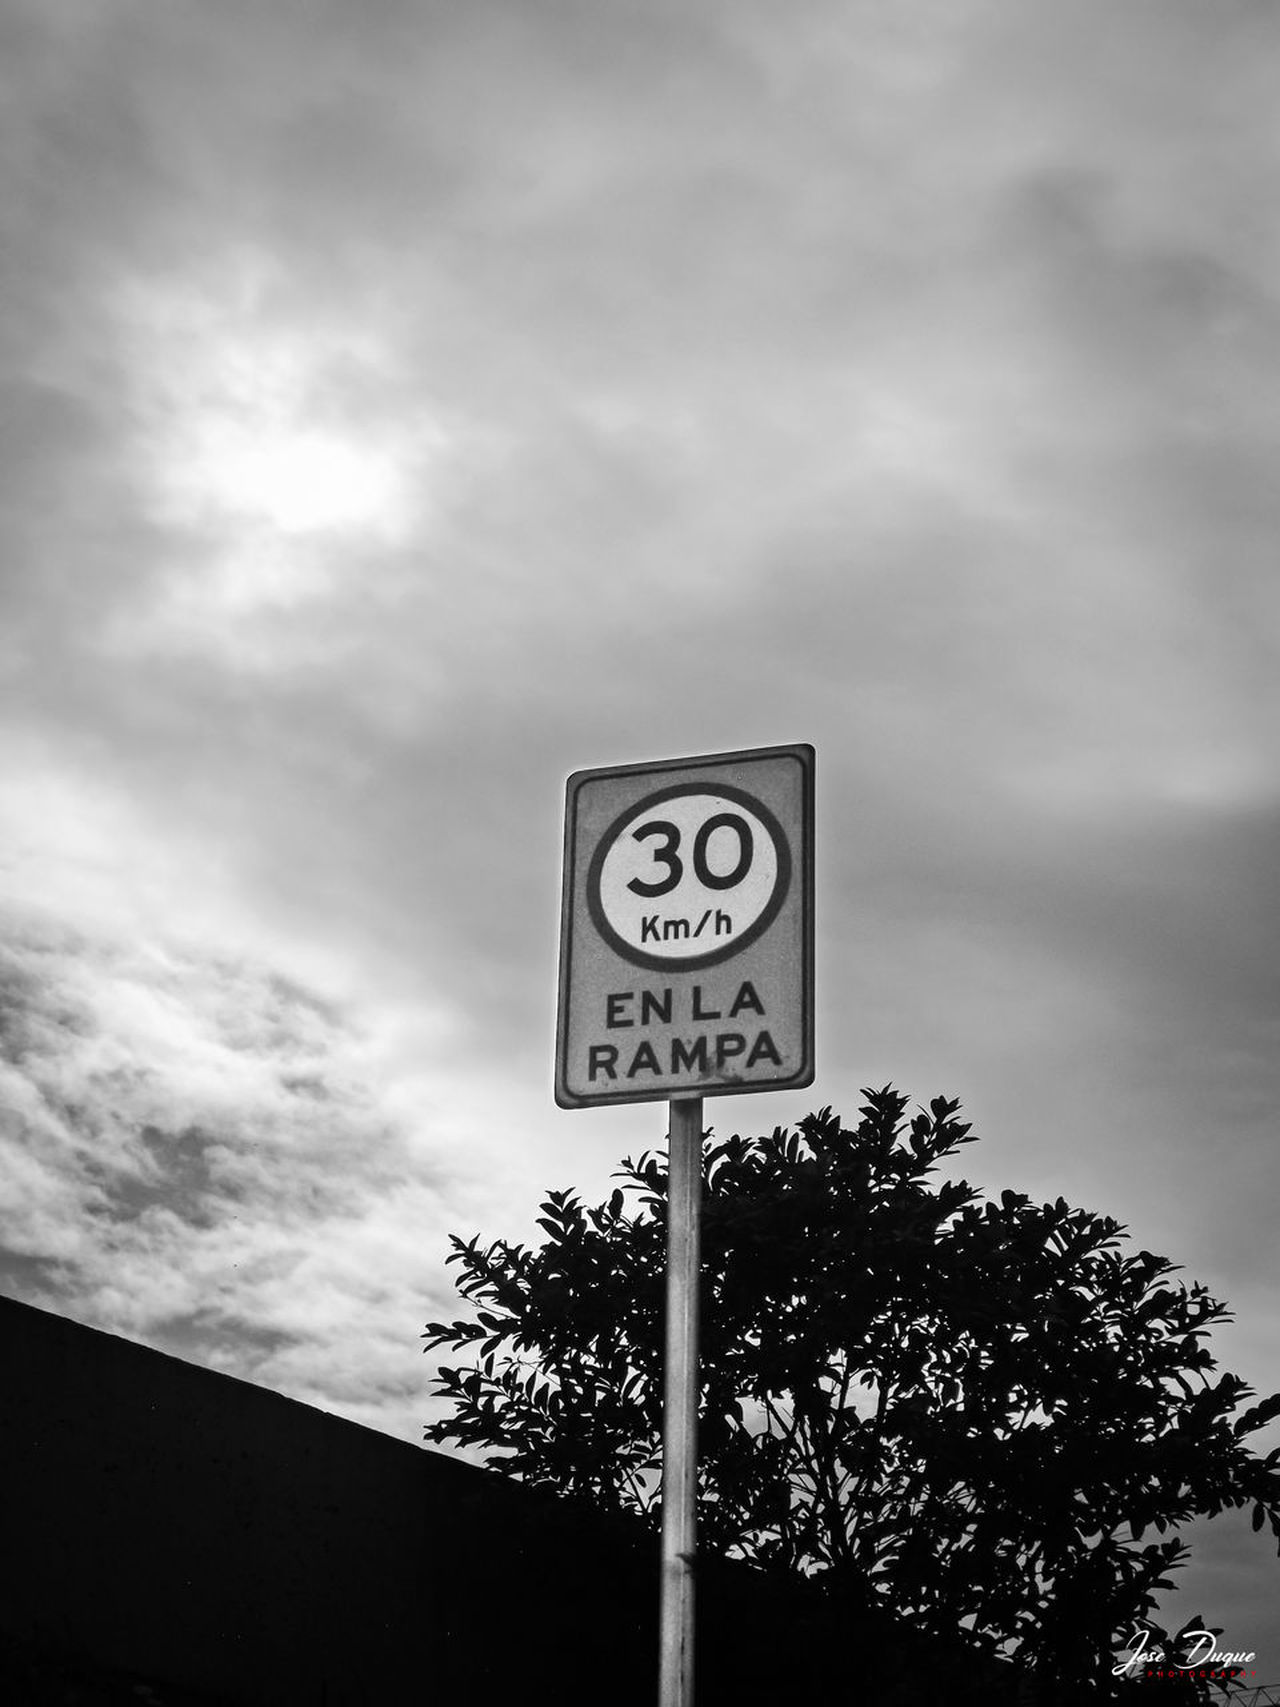 Black & White Black And White Blackandwhite Caracas City Cloud - Sky Communication Day Fujifilm Guidance Low Angle View Nature No People Outdoors Road Sign Sky Speed Limit Sign Streetphotography Text Tree Venezuela Warning Sign